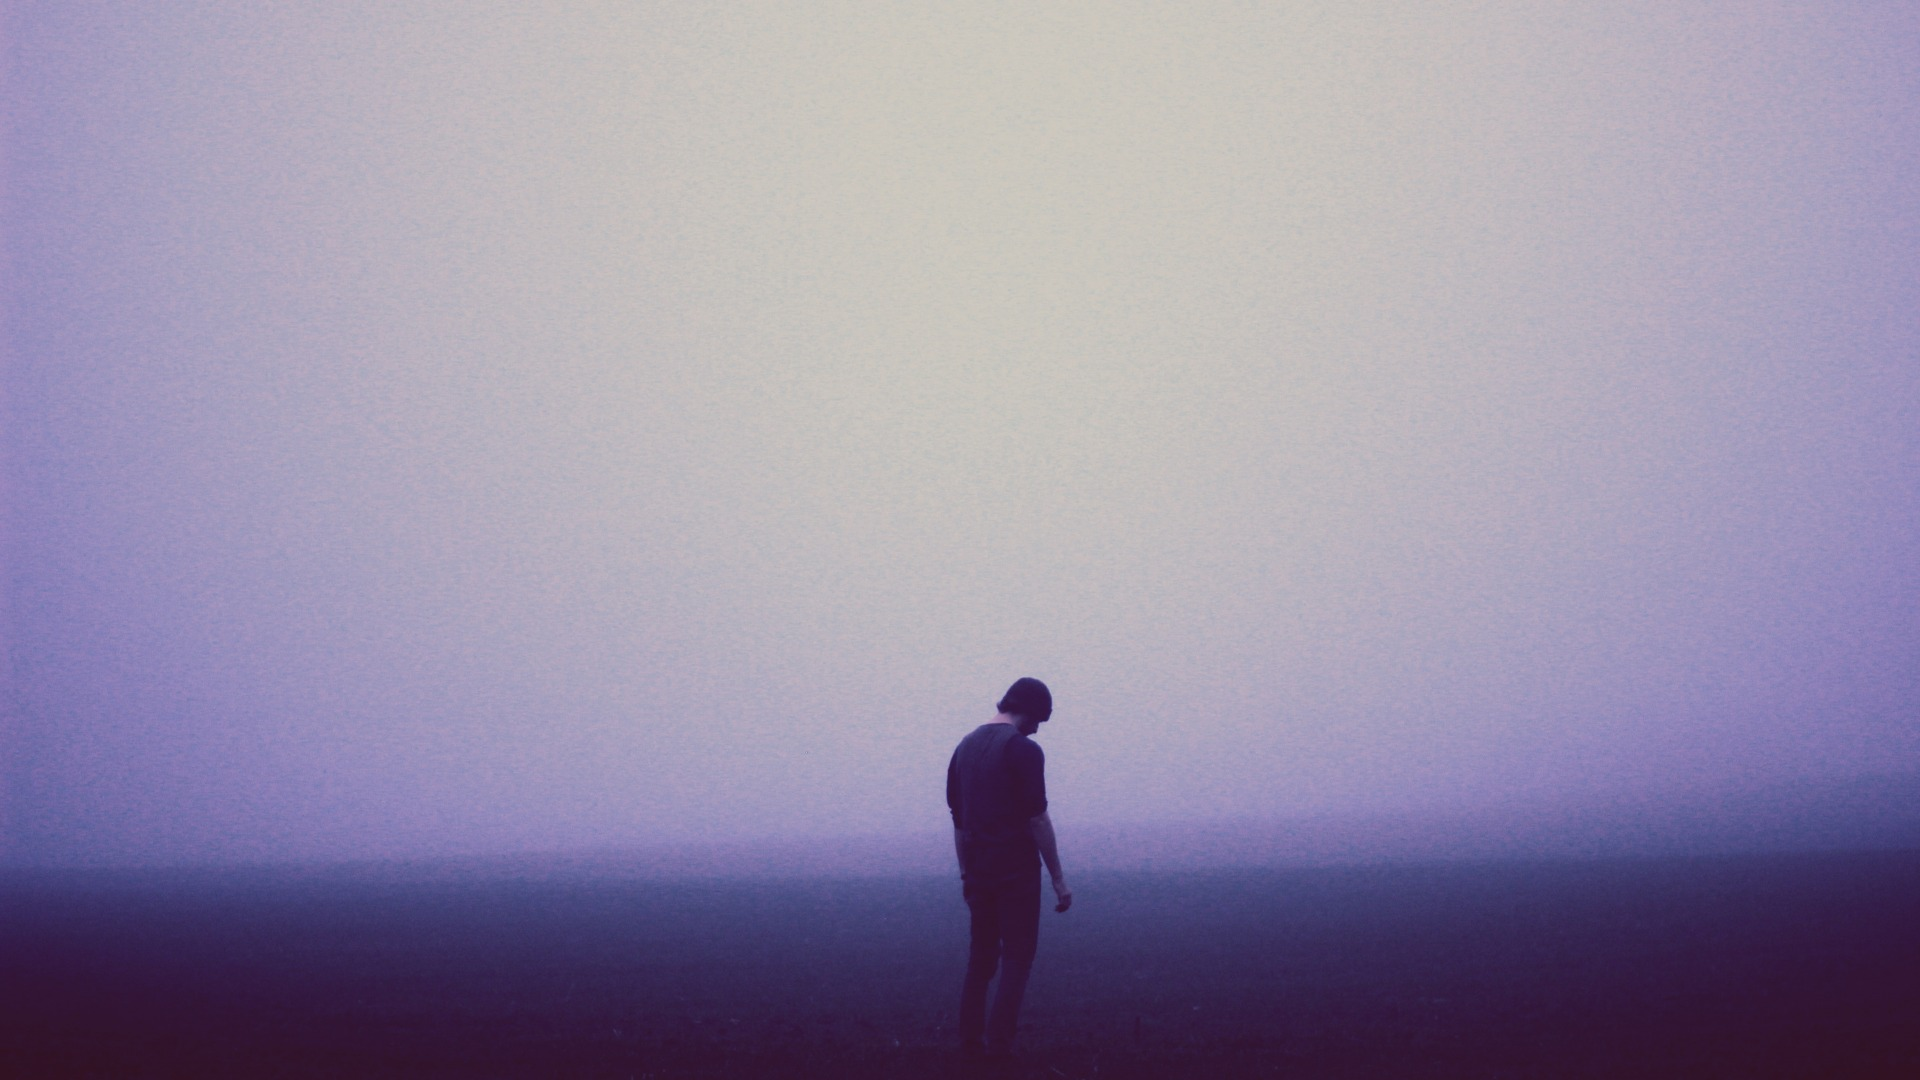 sad, melancholy, misty, man, foggy